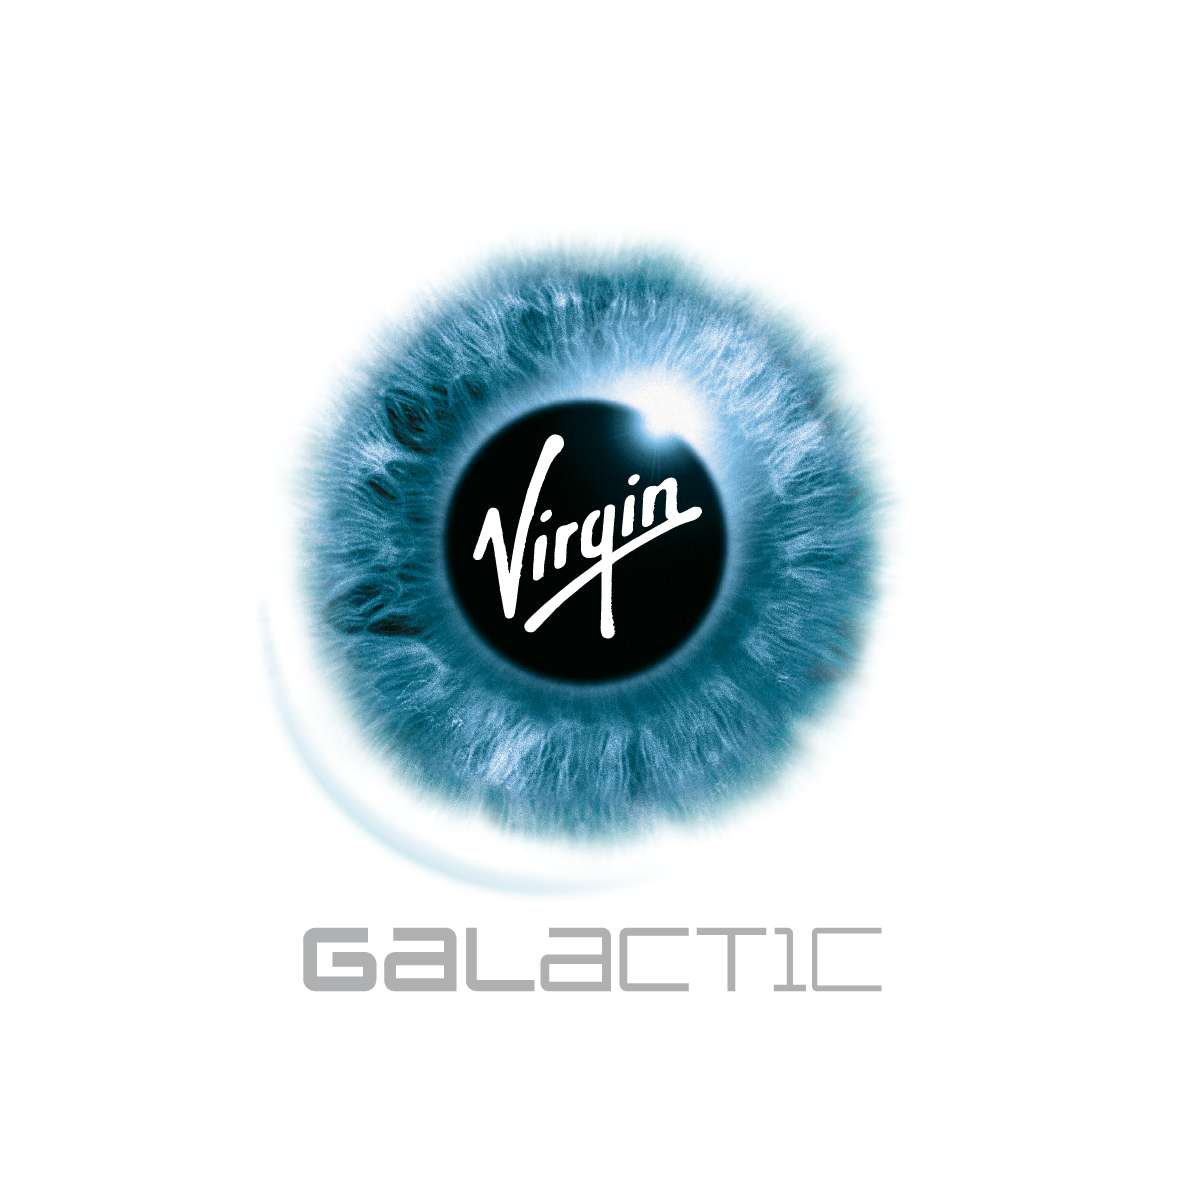 Virgin Galactic logo